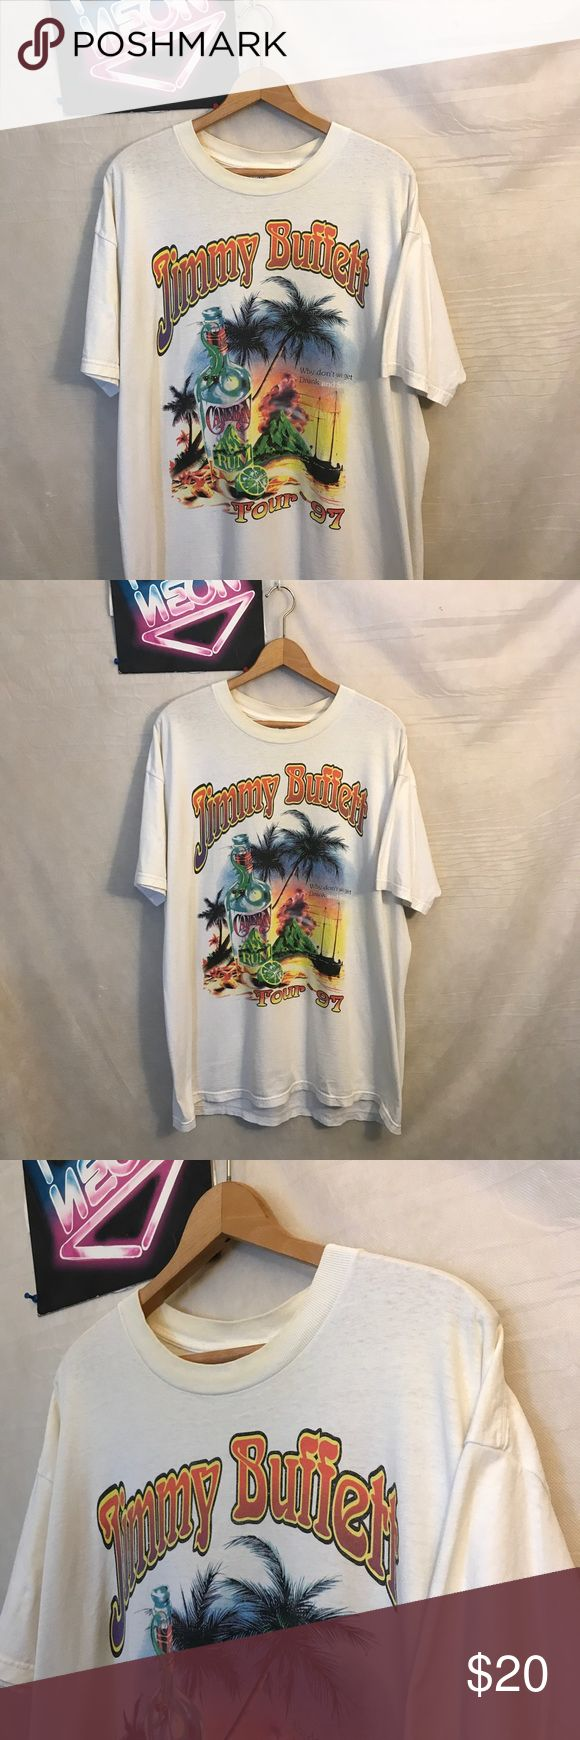 """Vtg Buffett Destroyed Mens 97' T-shirt Sz XL A1827 Vintage 1997 Jimmy Buffett Destroyed Men's Tour 97' White T-shirt Sz XL, pit to pit - 24"""", collar to hem - 29"""", discolored from age, no holes or rips, ships from smoke free facility, thank you delta Shirts Tees - Short Sleeve"""